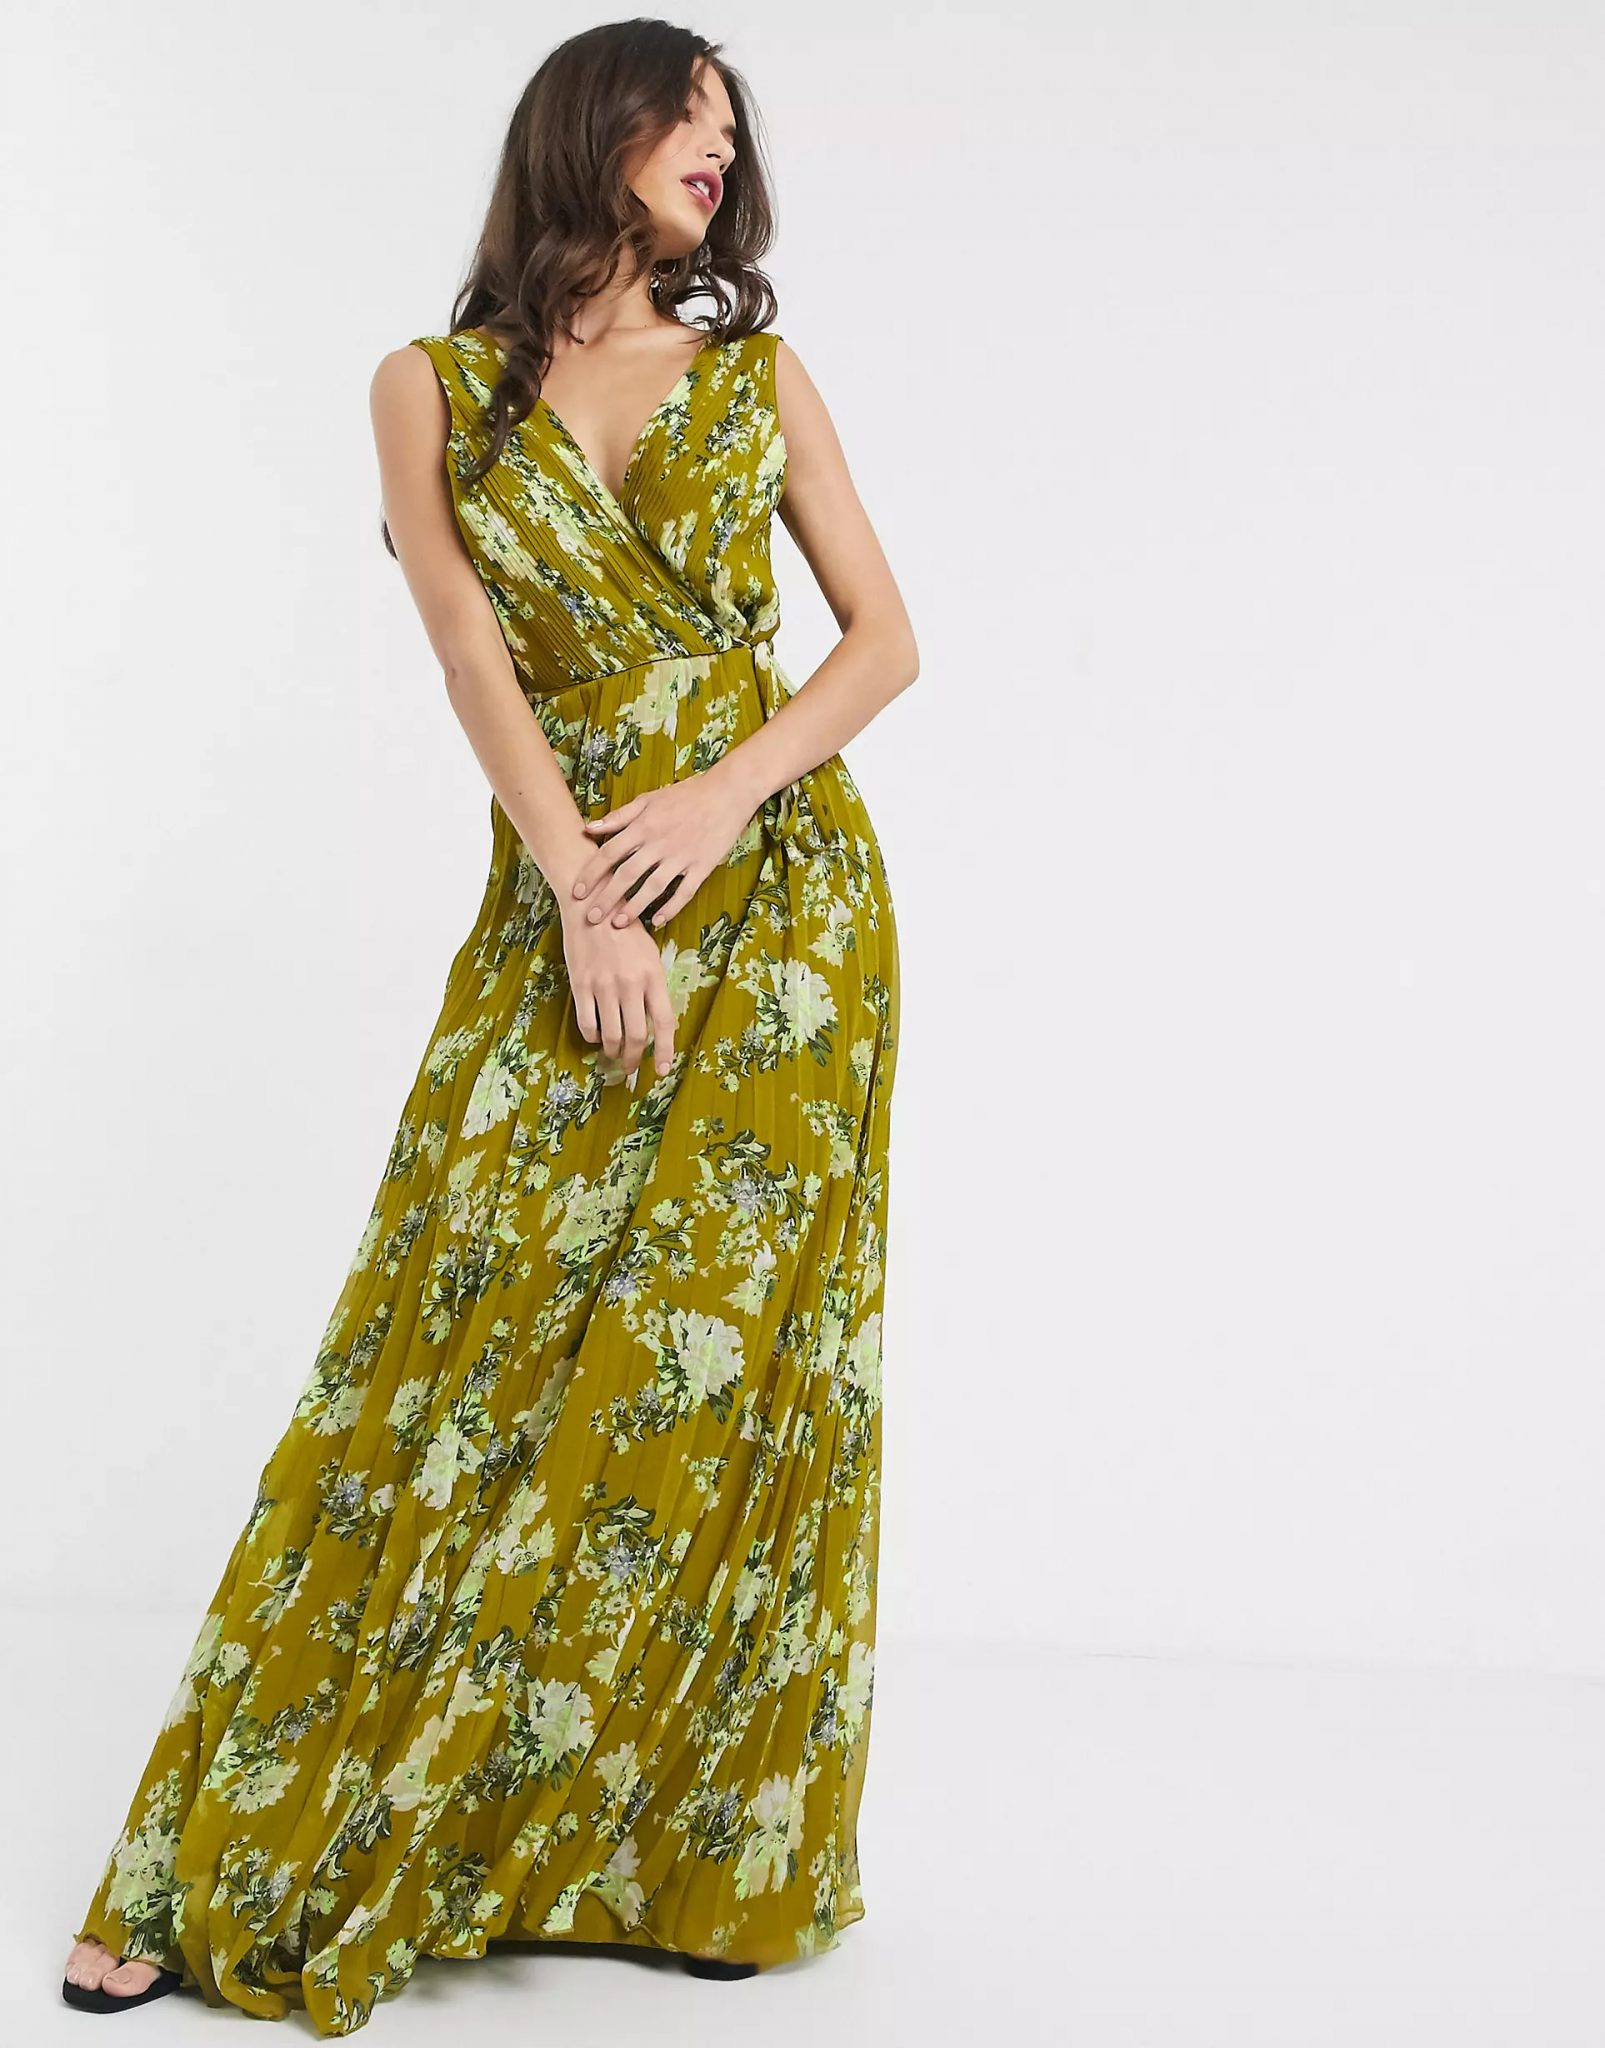 Wrap-bodice-maxi-dress-with-tie-waist-and-pleat-skirt-in-floral-print_-ASOS-DESIGN_-£55.00